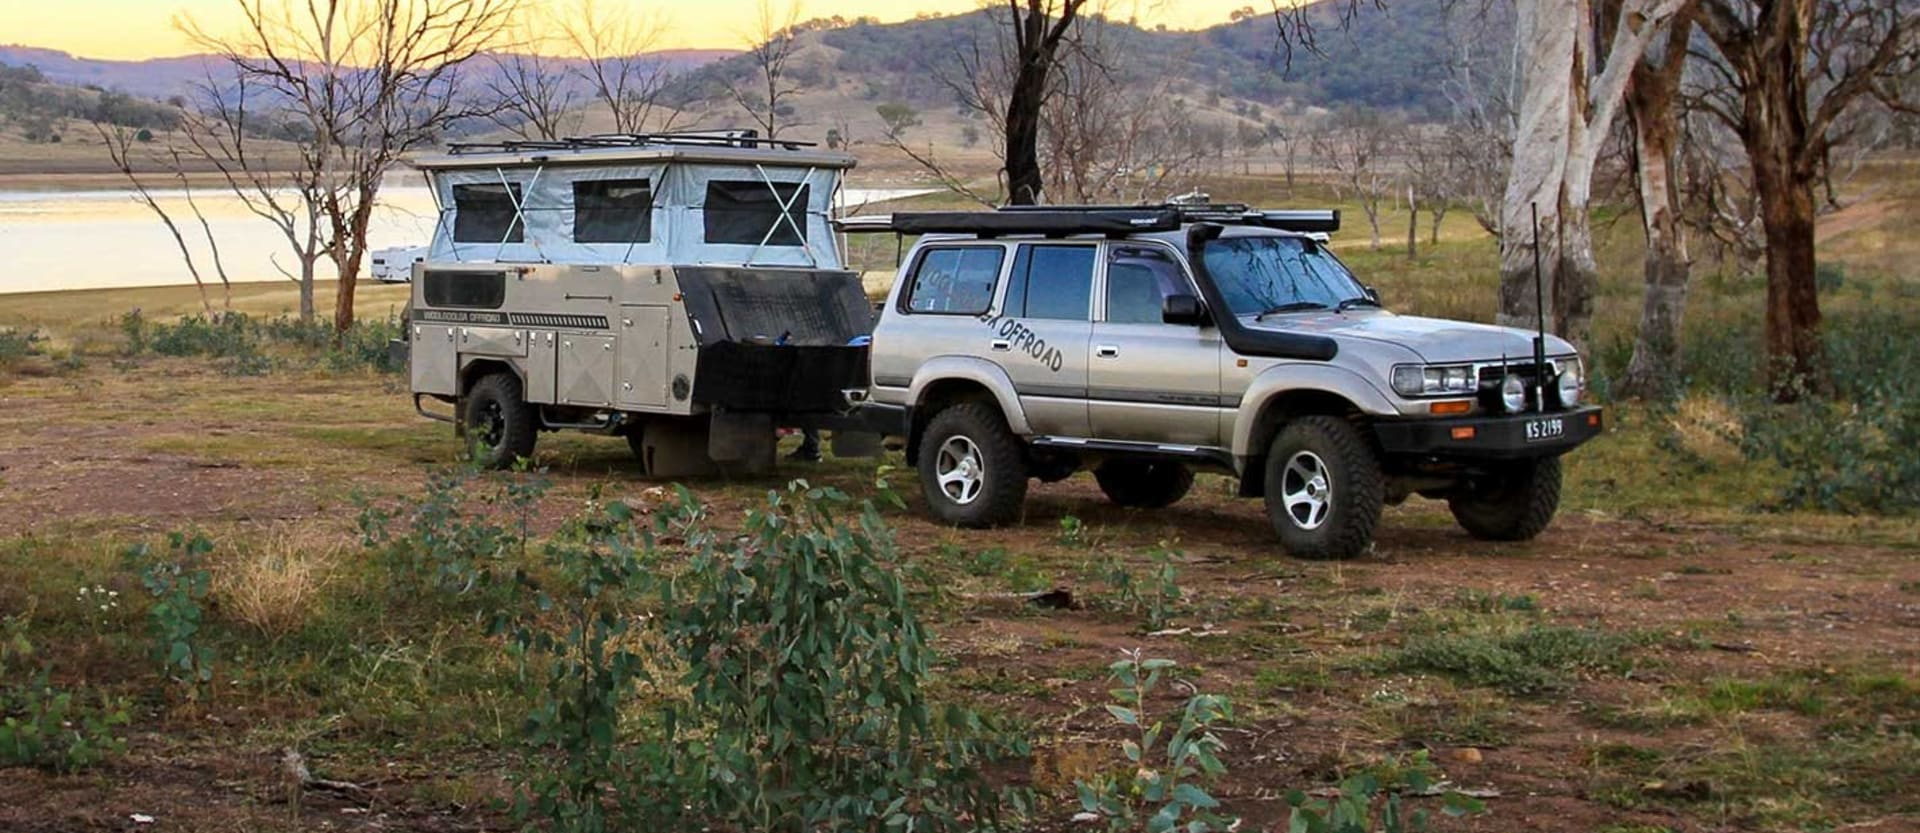 Nundle NSW 4x4 travel guide